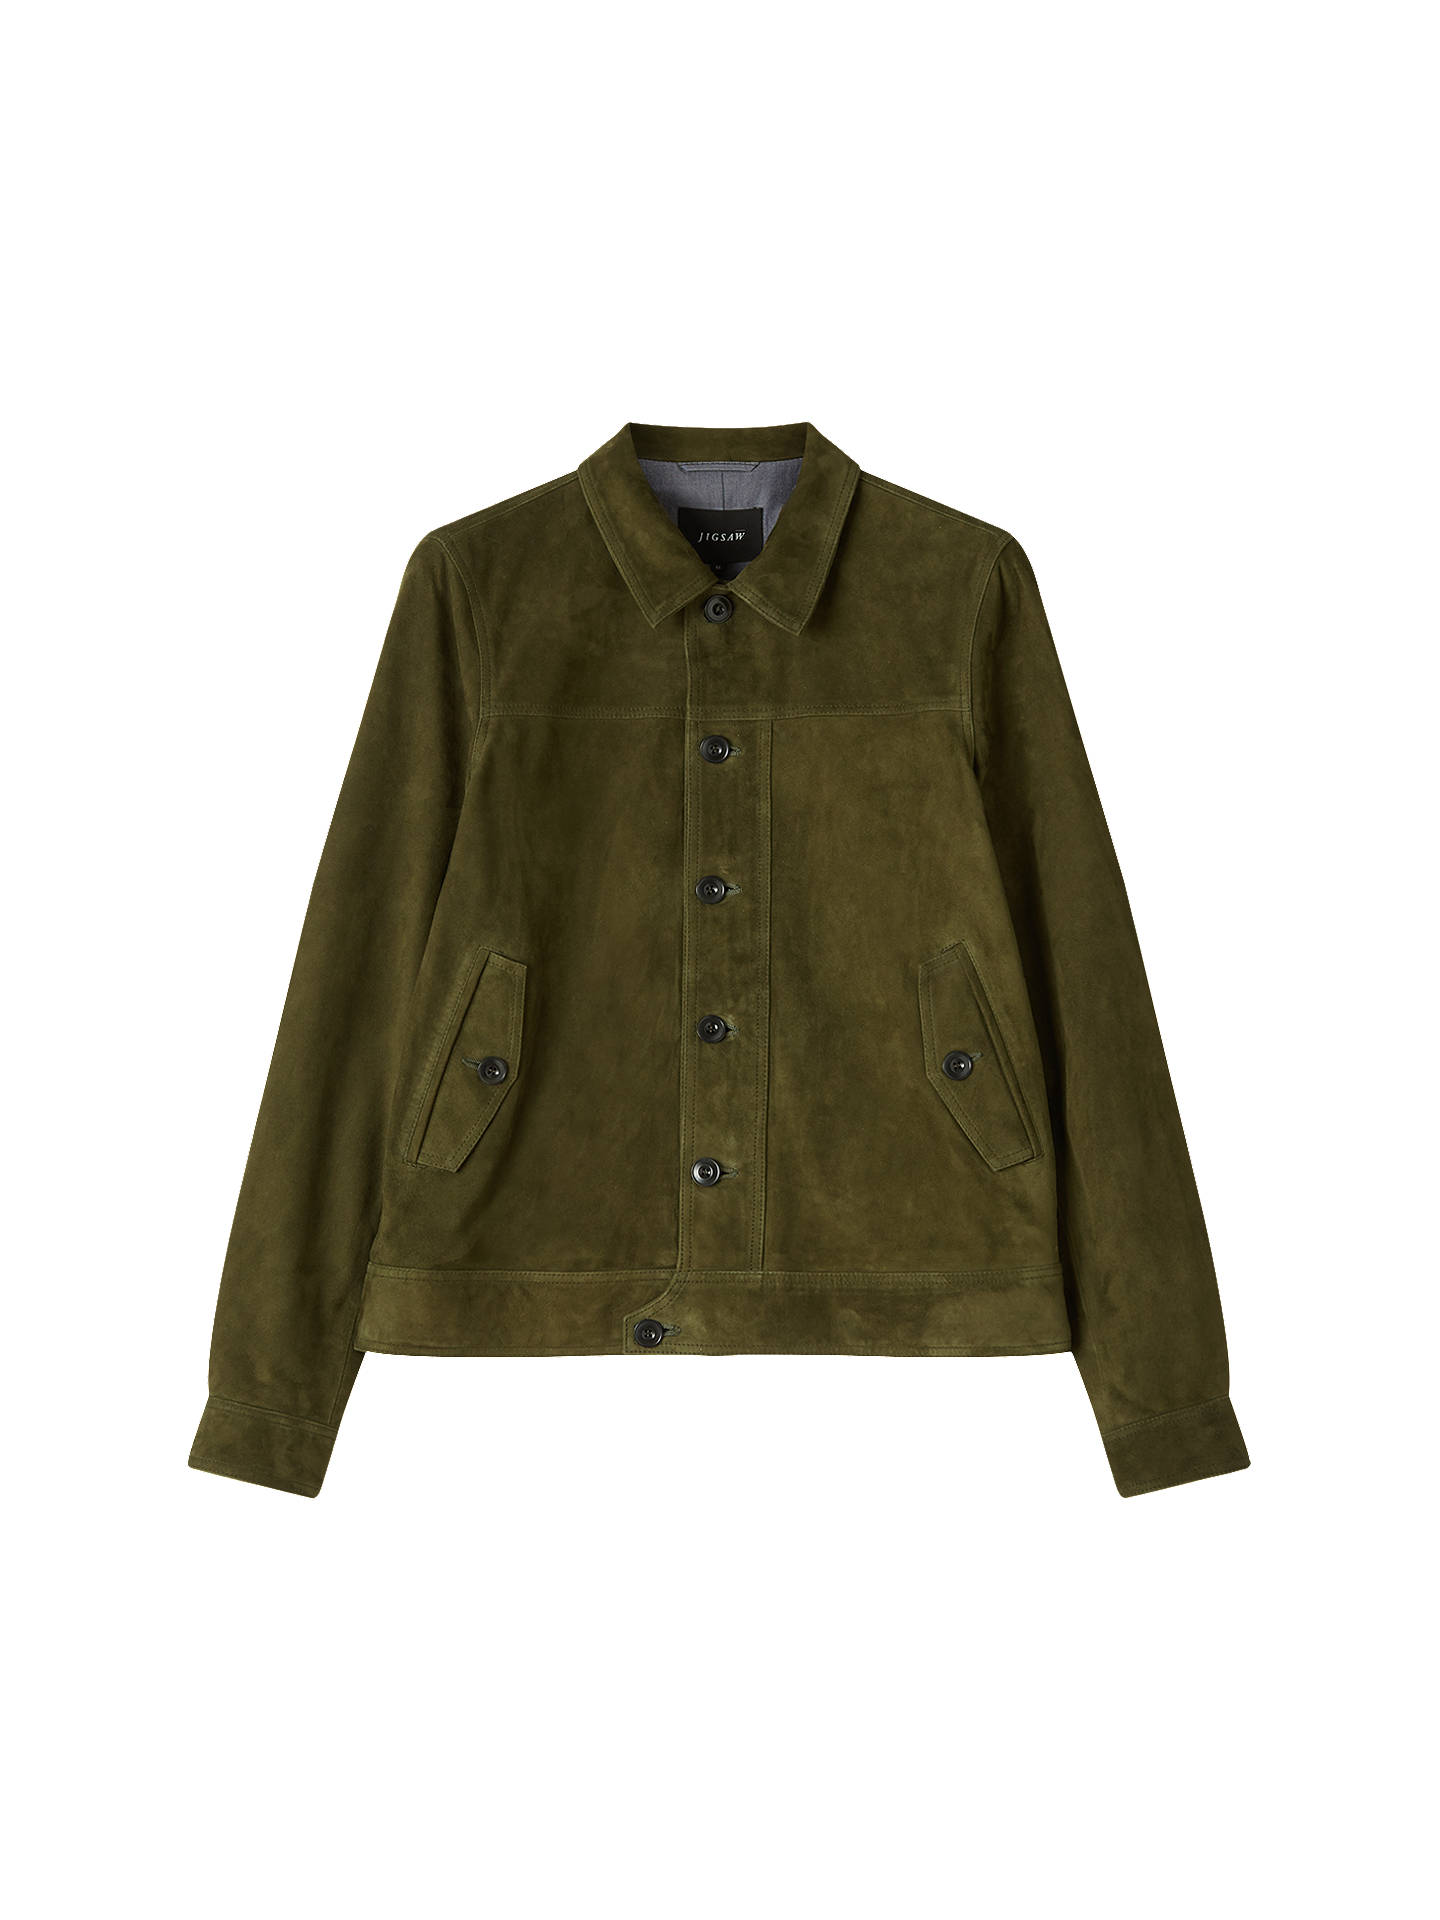 9891905a5 Jigsaw Suede Jacket, Khaki at John Lewis & Partners